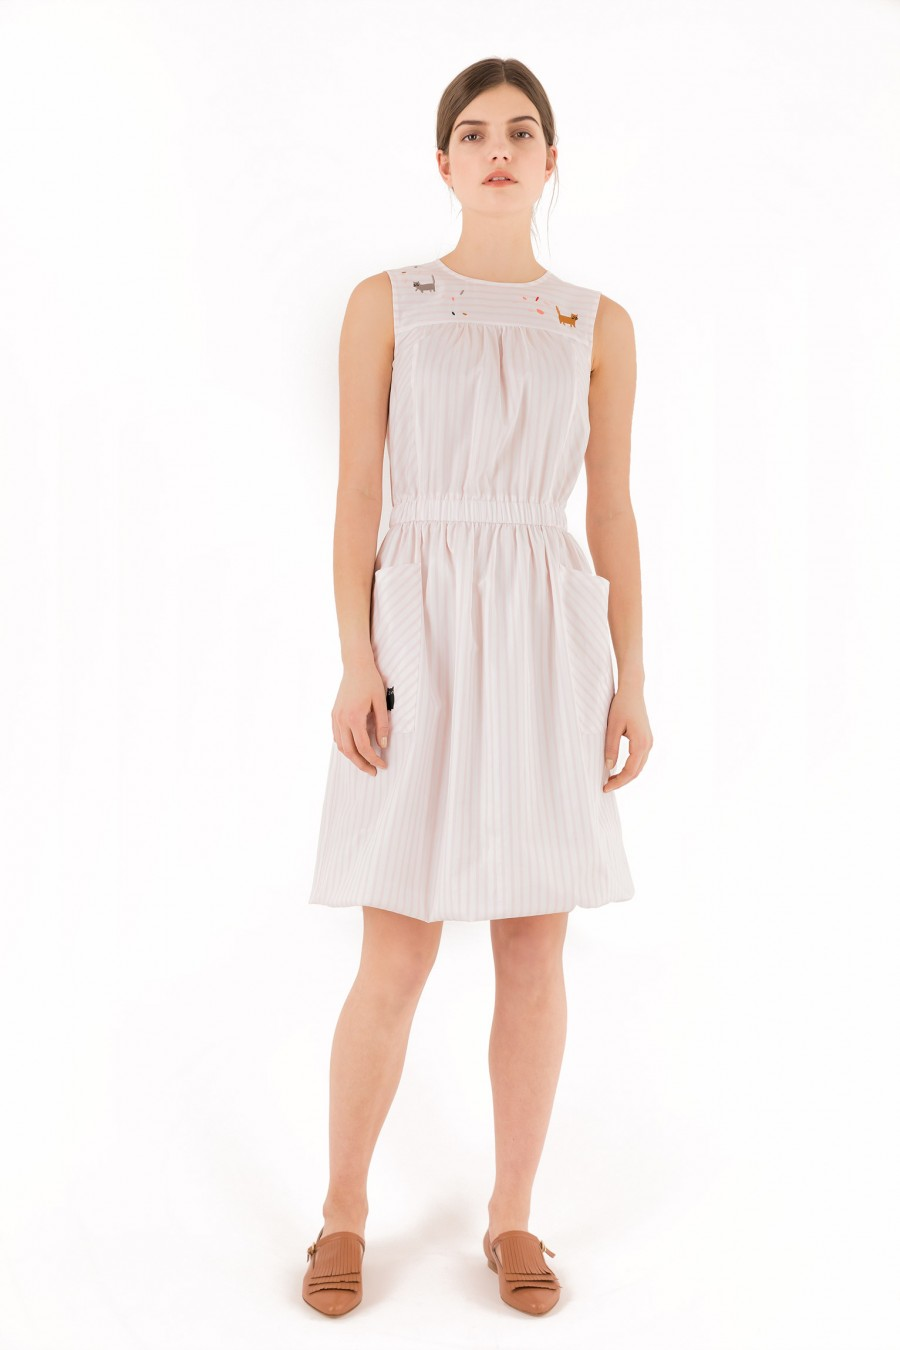 Summer dress with white and pink stripes